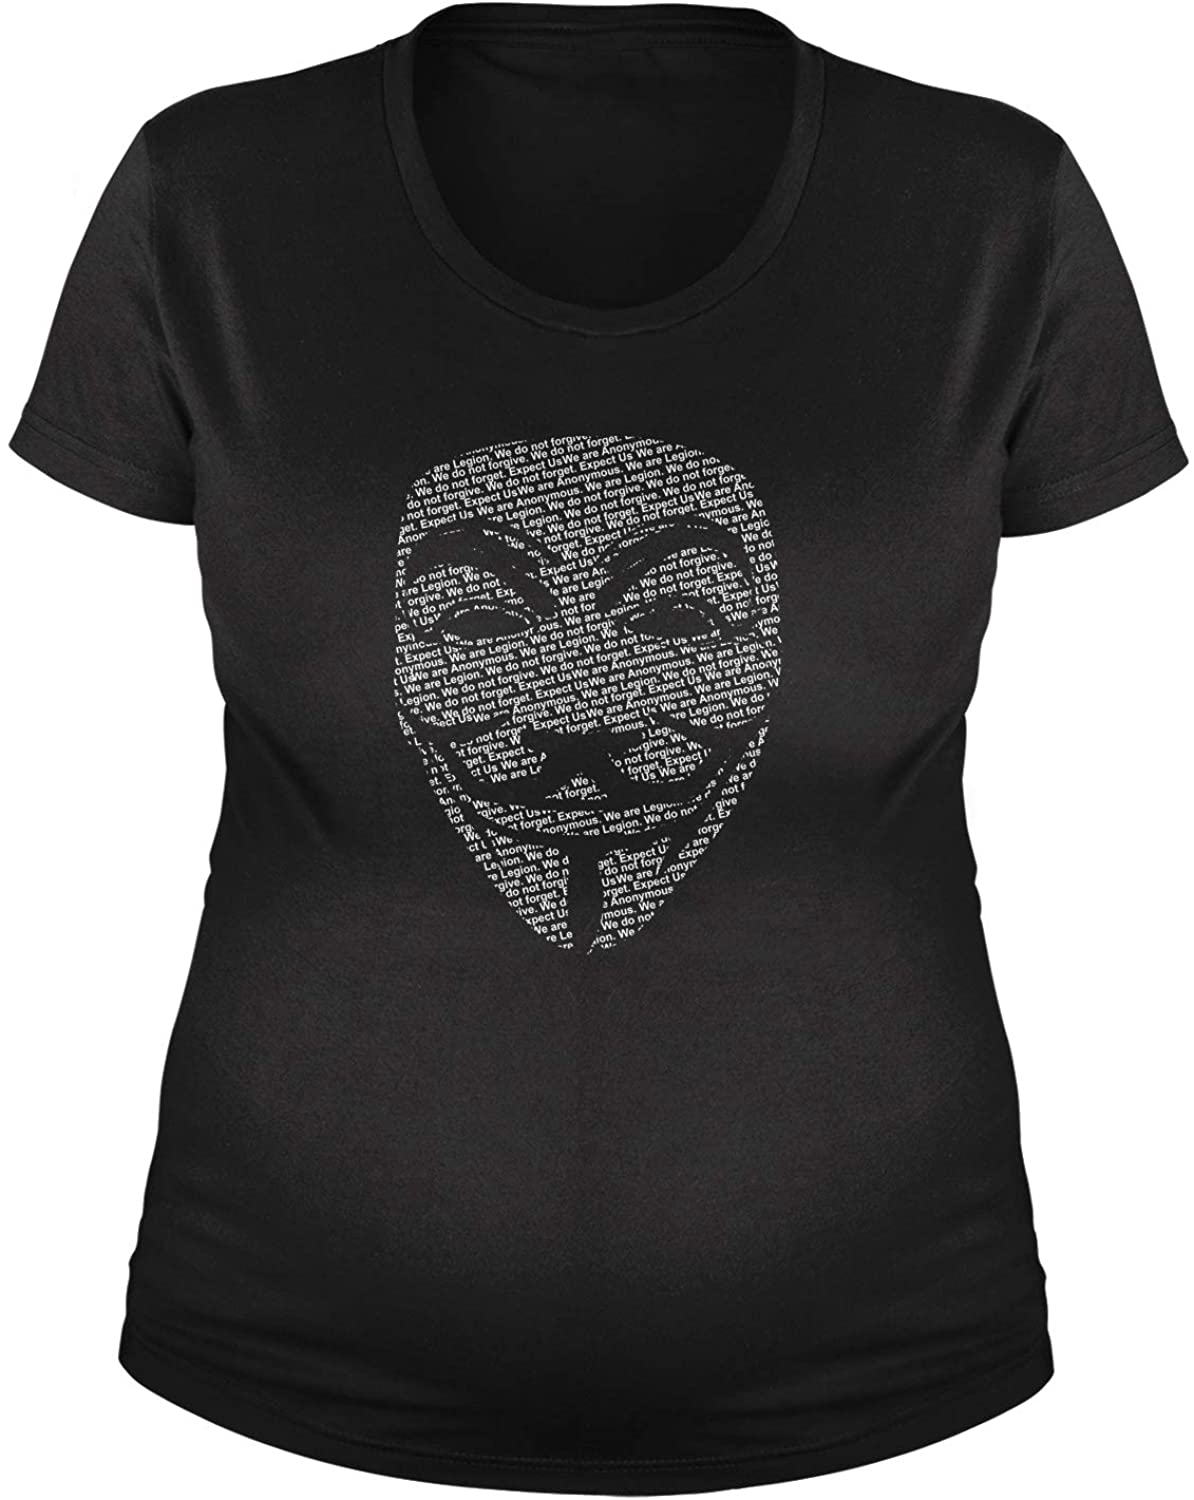 Expression Tees V for Vendetta Anonymous Mask Maternity Pregnancy Scoop Neck T-Shirt